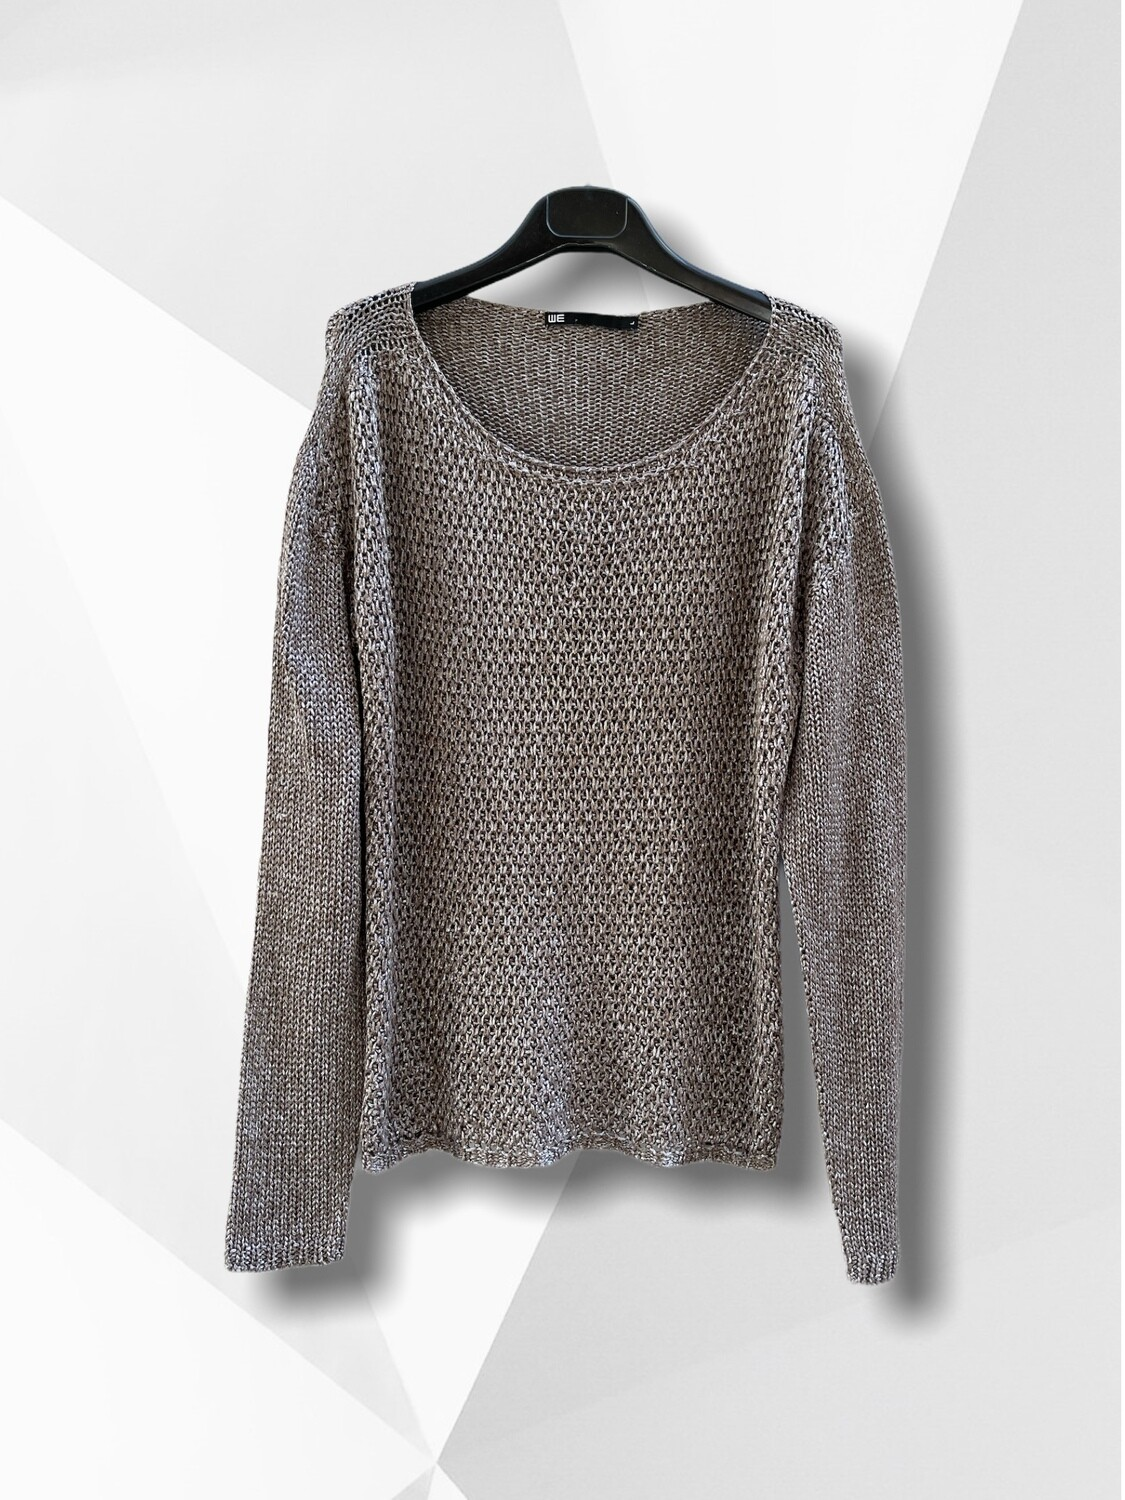 Sweater de hilo con brillo